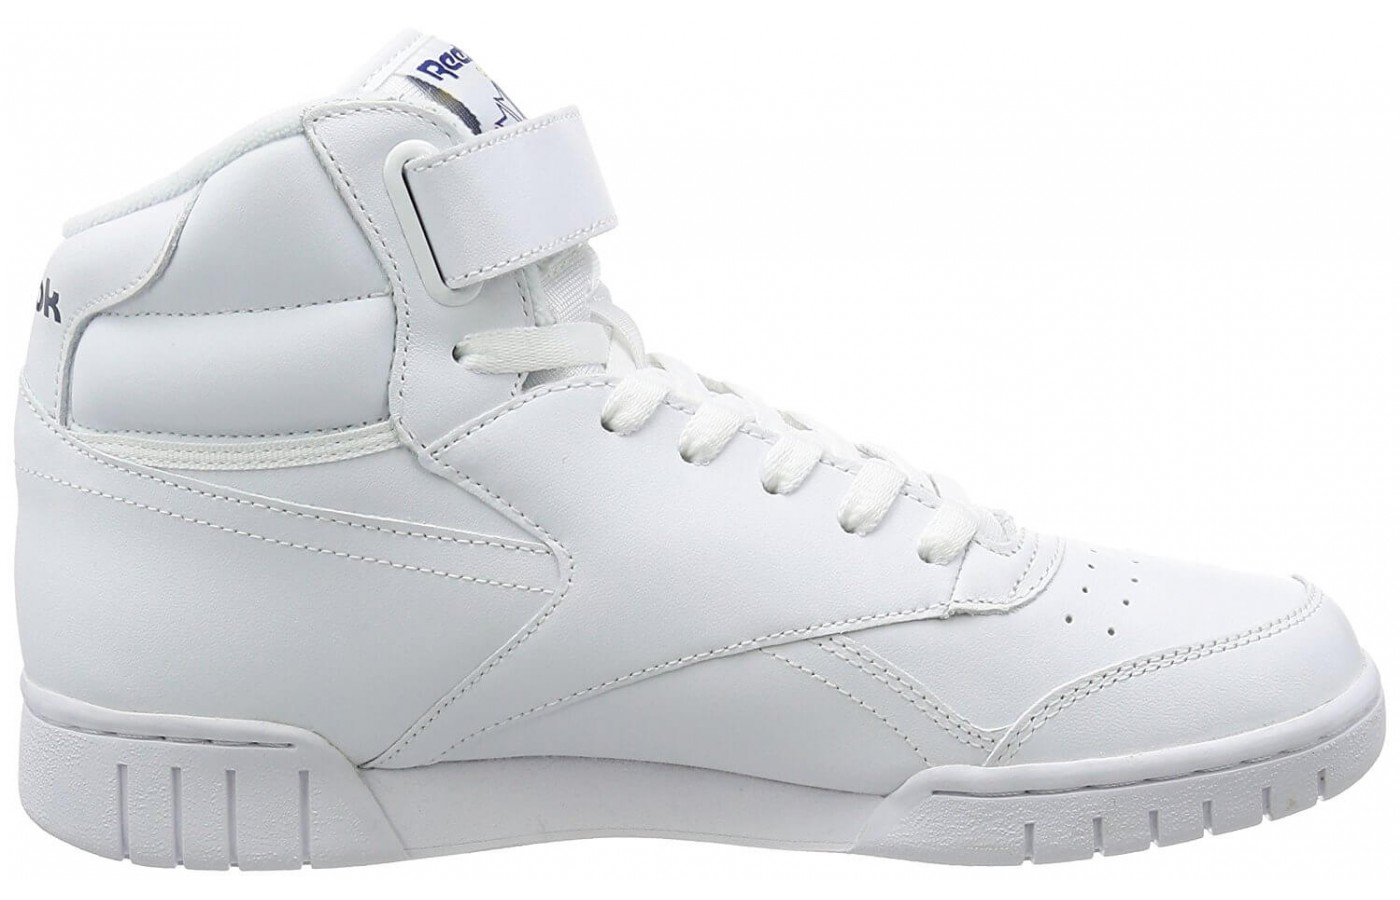 17056e0750f ... The Reebok Ex-O-Fit Hi features a leather upper ...